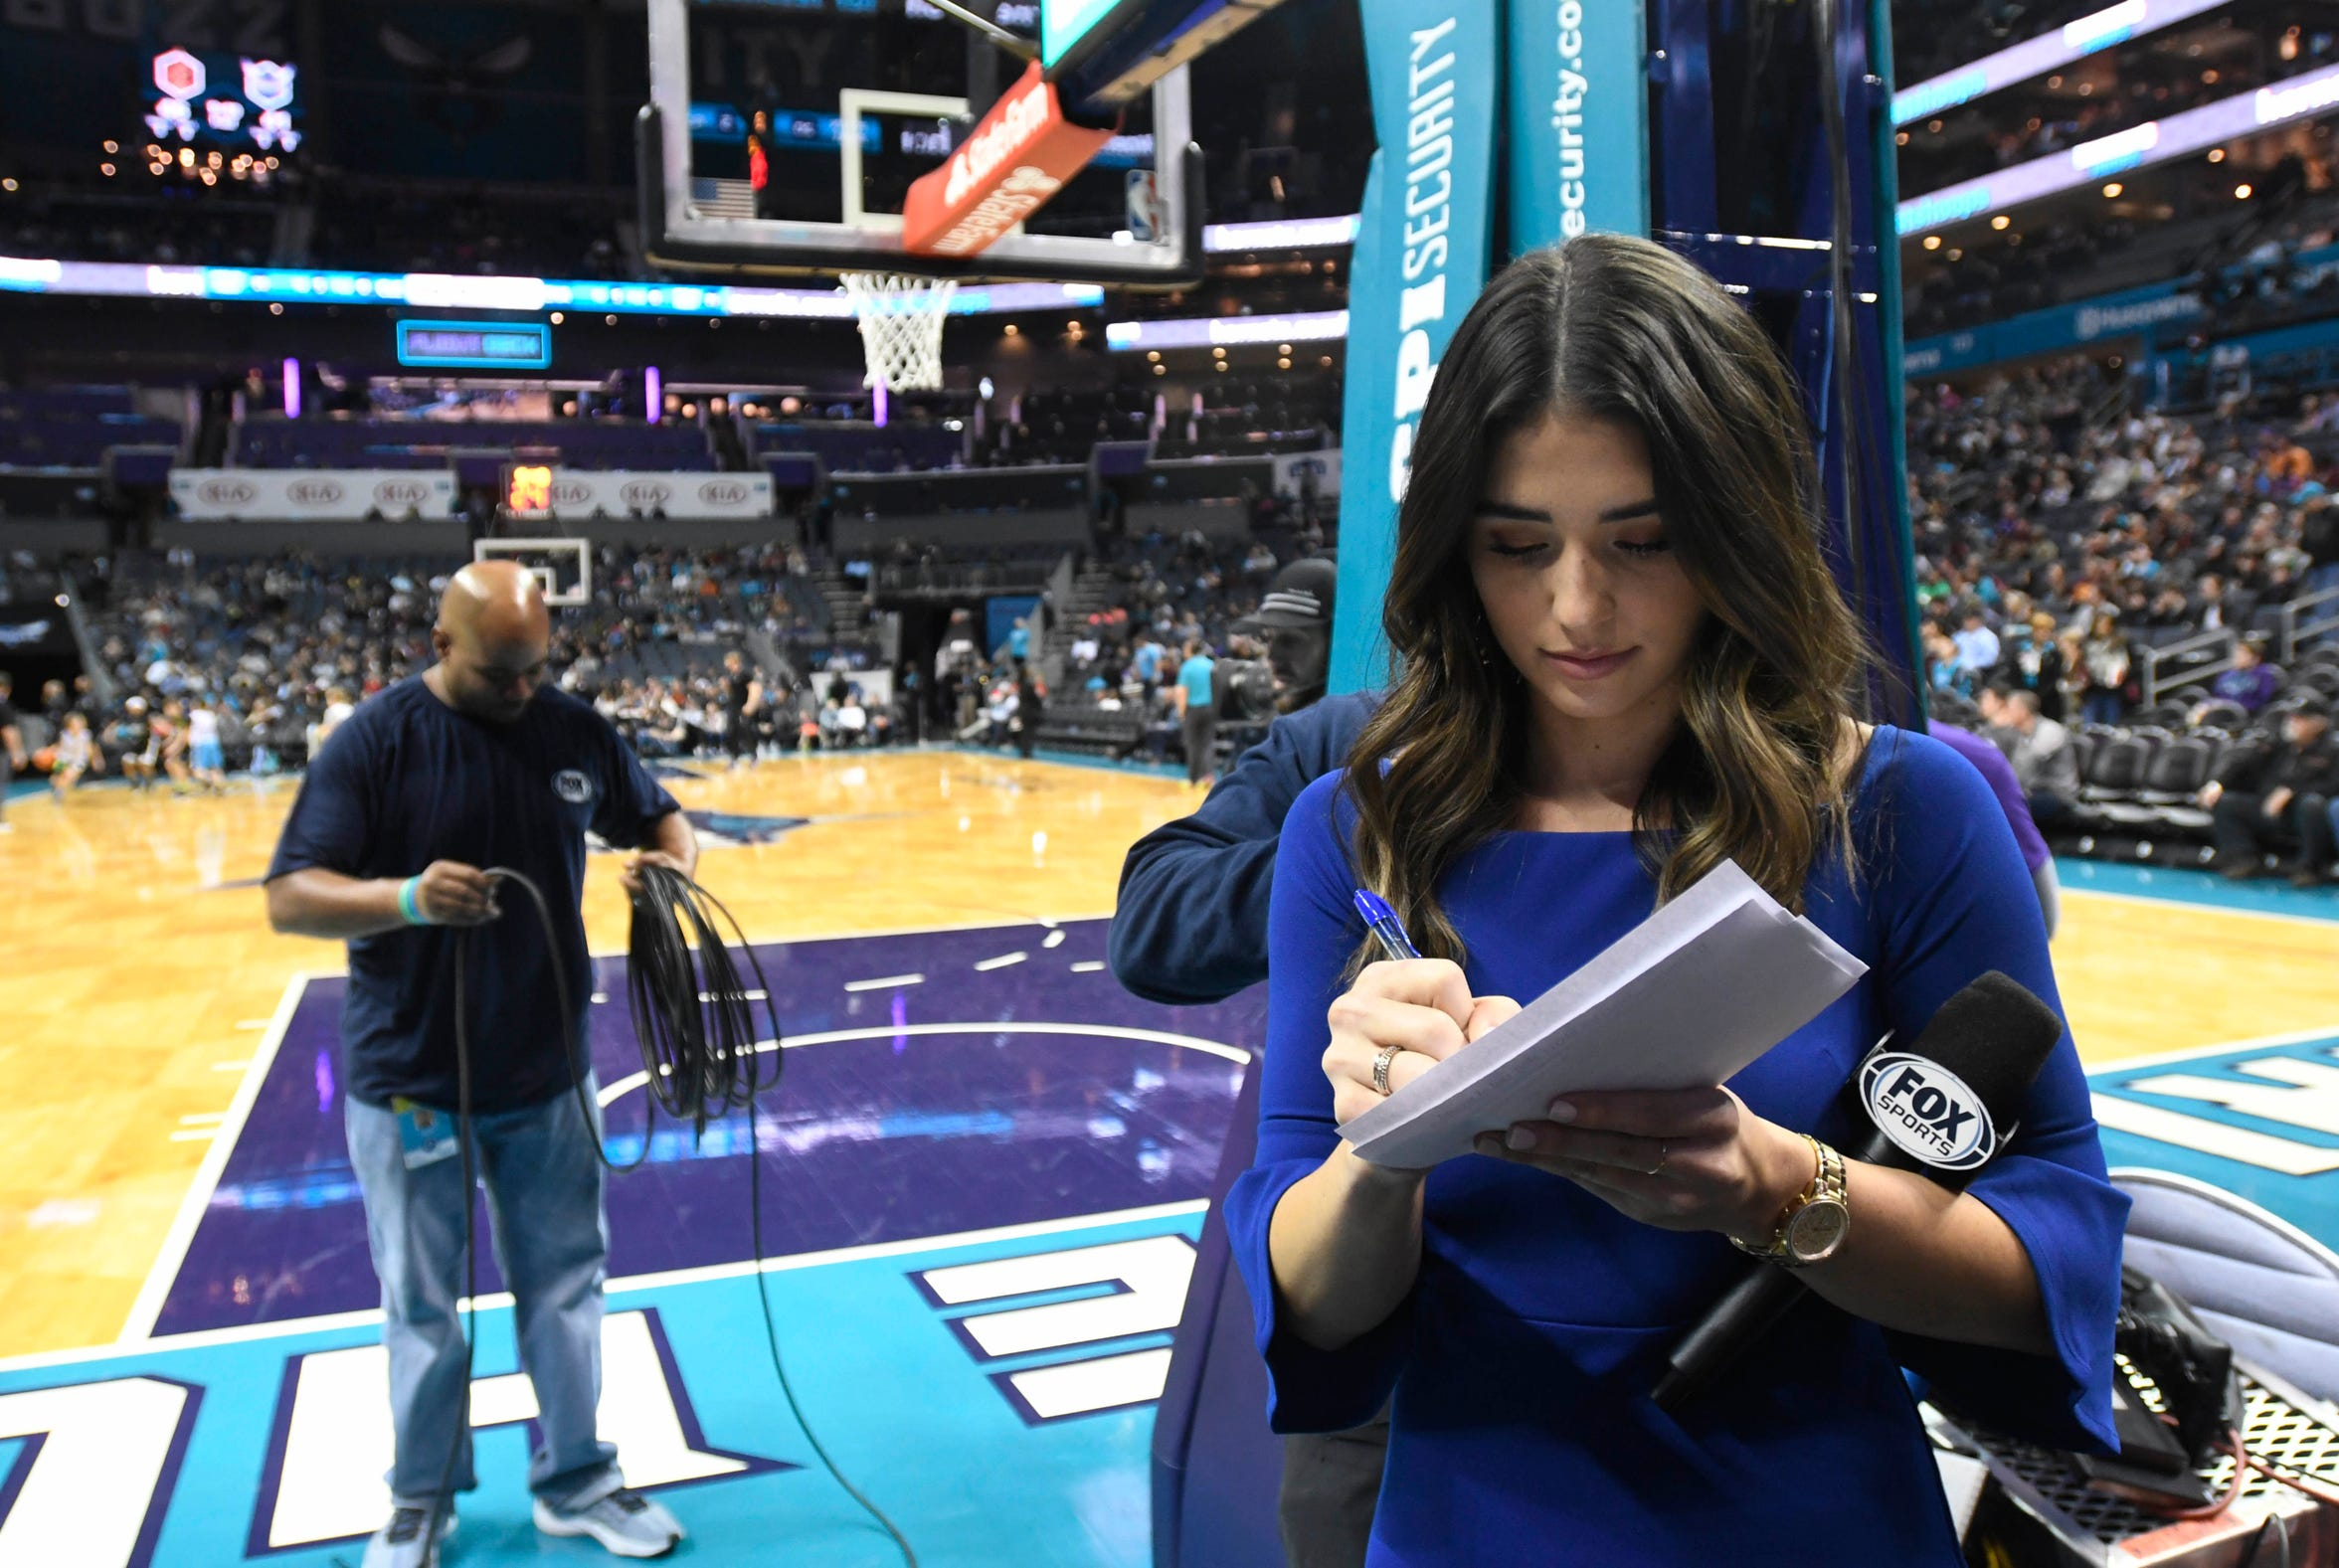 In this Dec. 19, 2018 photo, Ashley ShahAhmadi takes notes along the baseline during halftime of the Charlotte Hornets game against the Cleveland Cavaliers at the Spectrum Center in Charlotte, N.C.